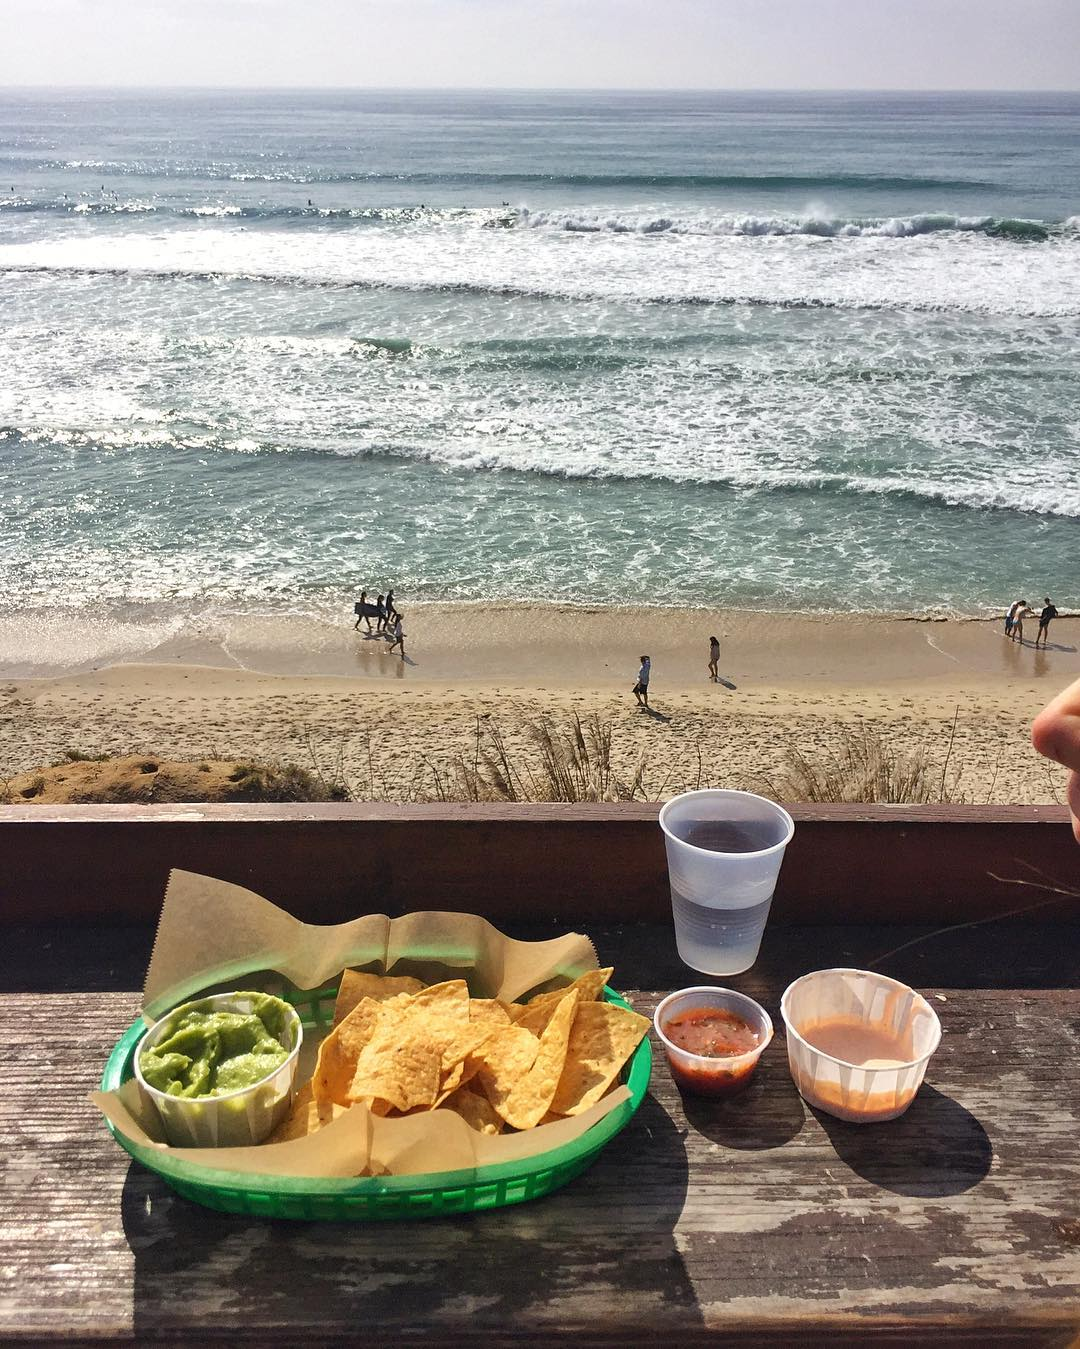 Today's chips/salsa/taco combo lunch view, courtesy of Cardiff-by-the-Sea, California. Not a bad place to be. #summervibes #ihearttacos #BullTaco